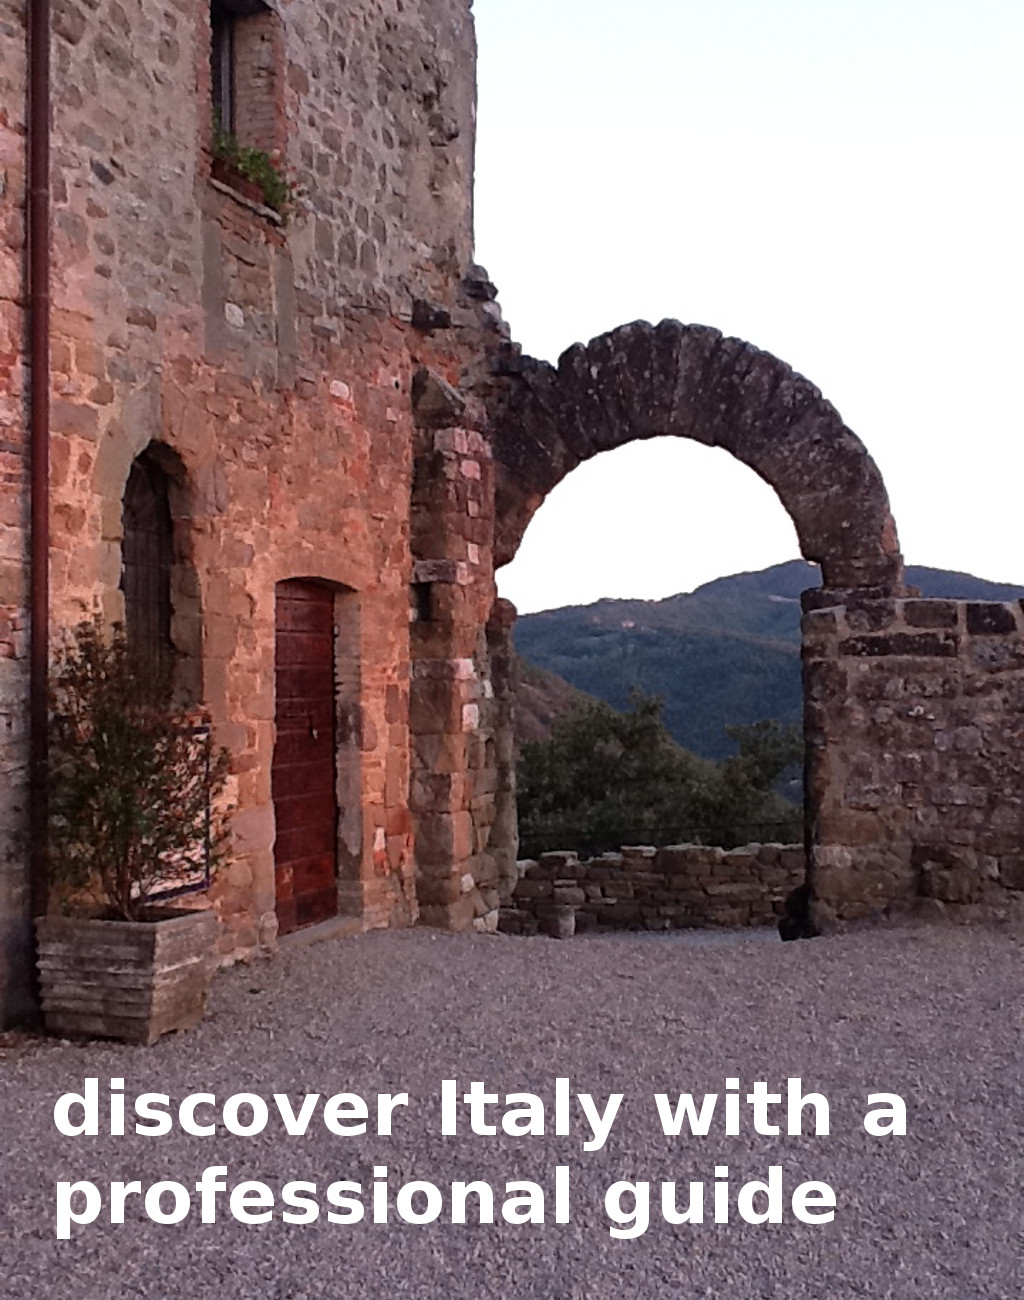 discover Italy with a professional guide